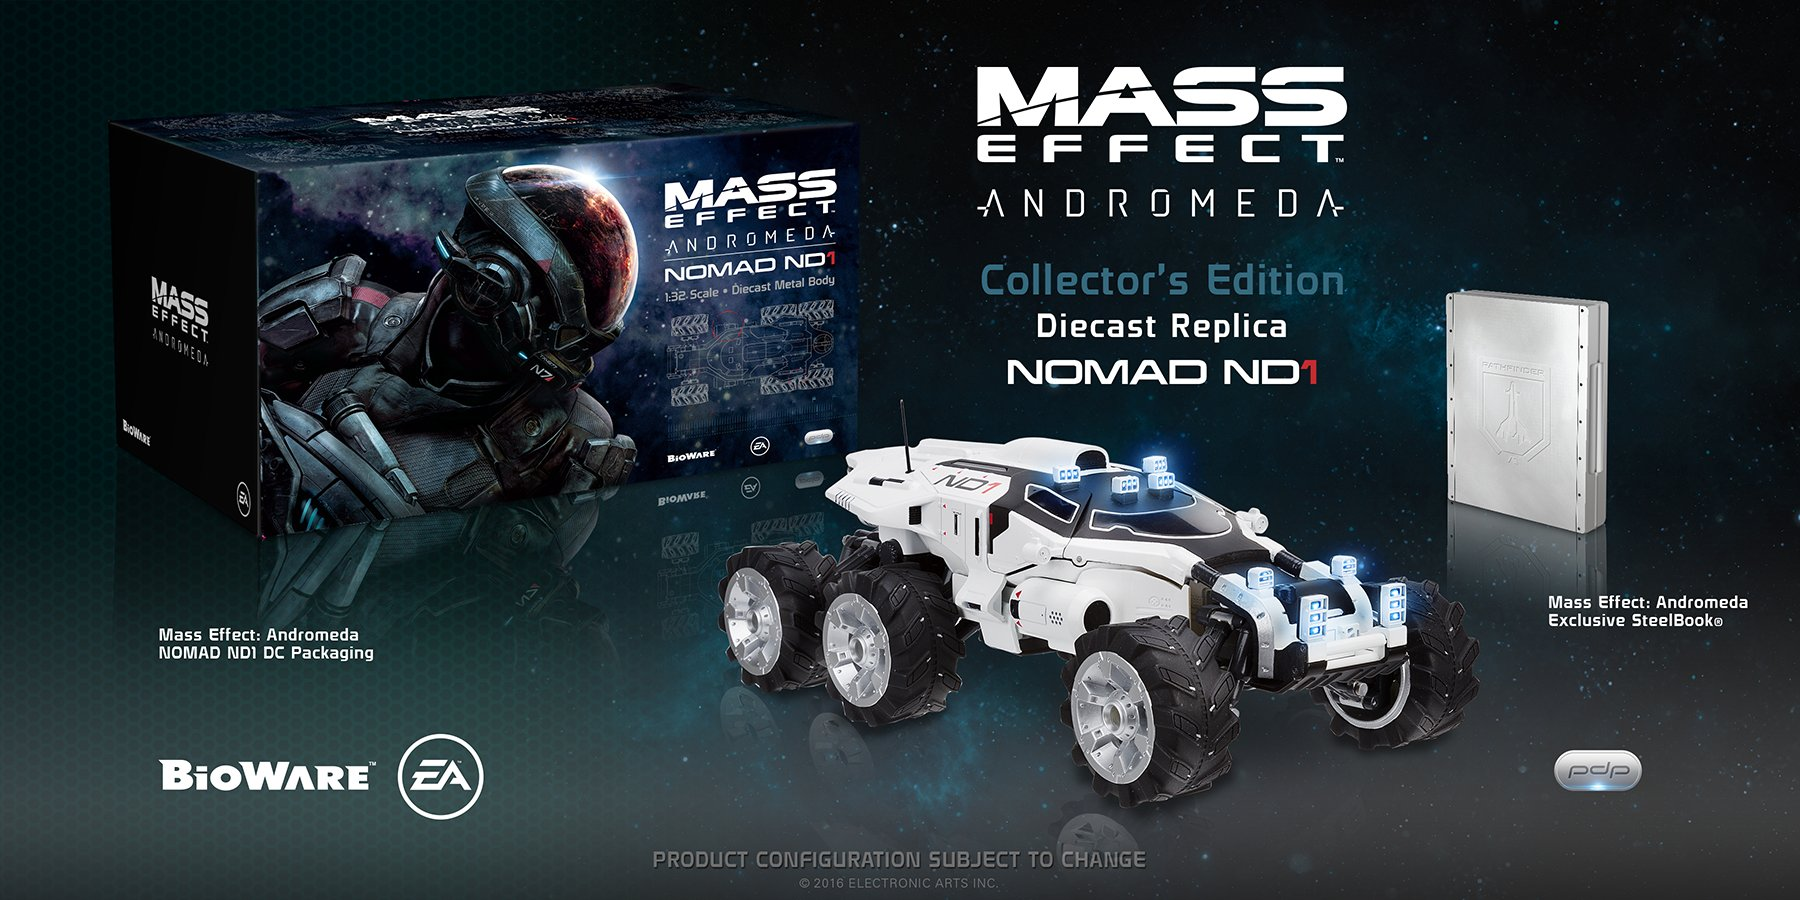 mass_effect_andromeda_nomad_collectors_edition_promo_1